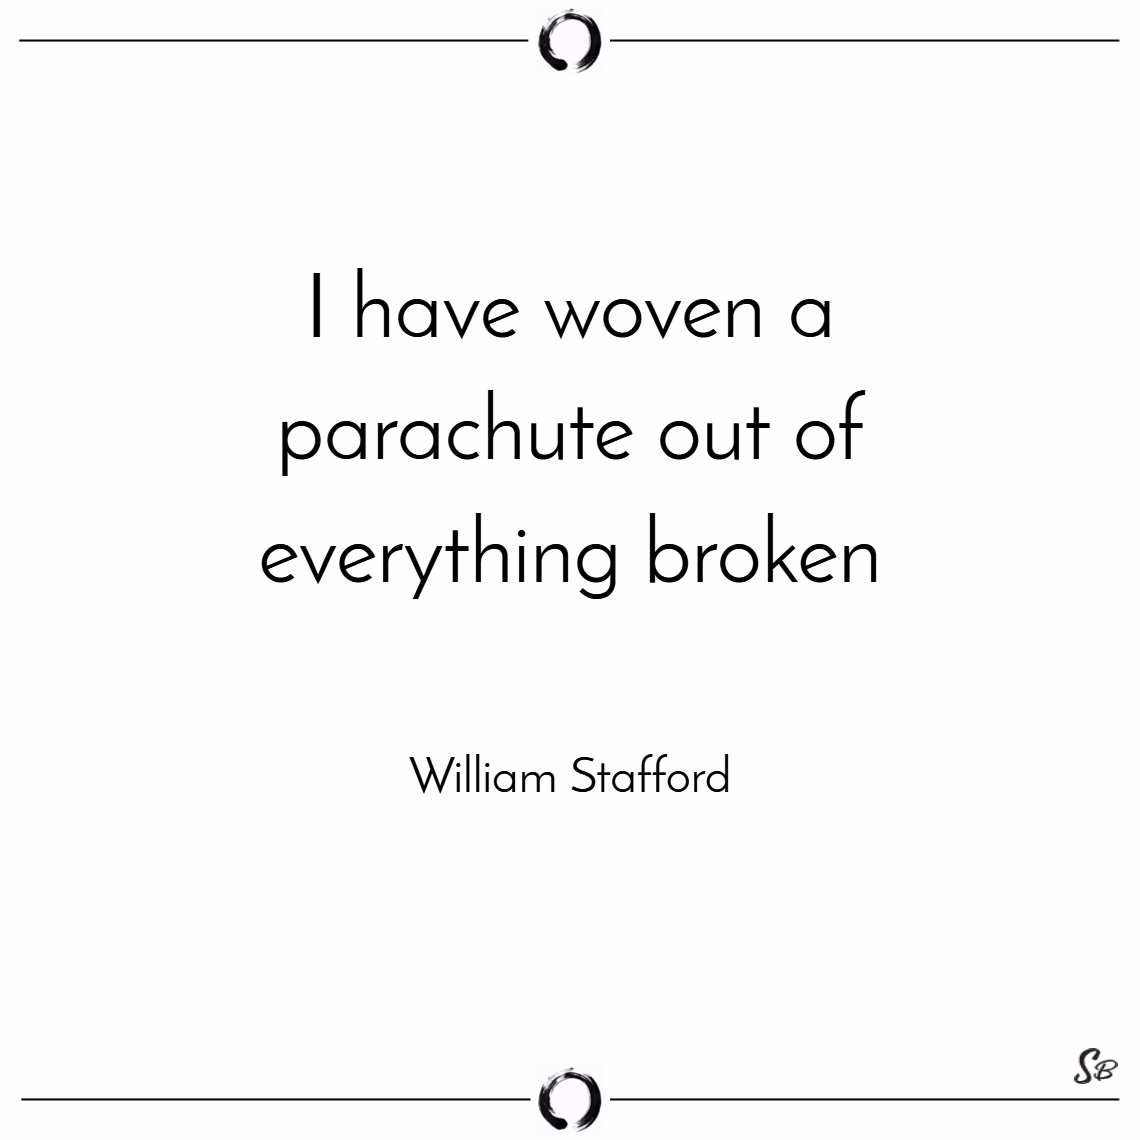 I have woven a parachute out of everything broken. – william stafford